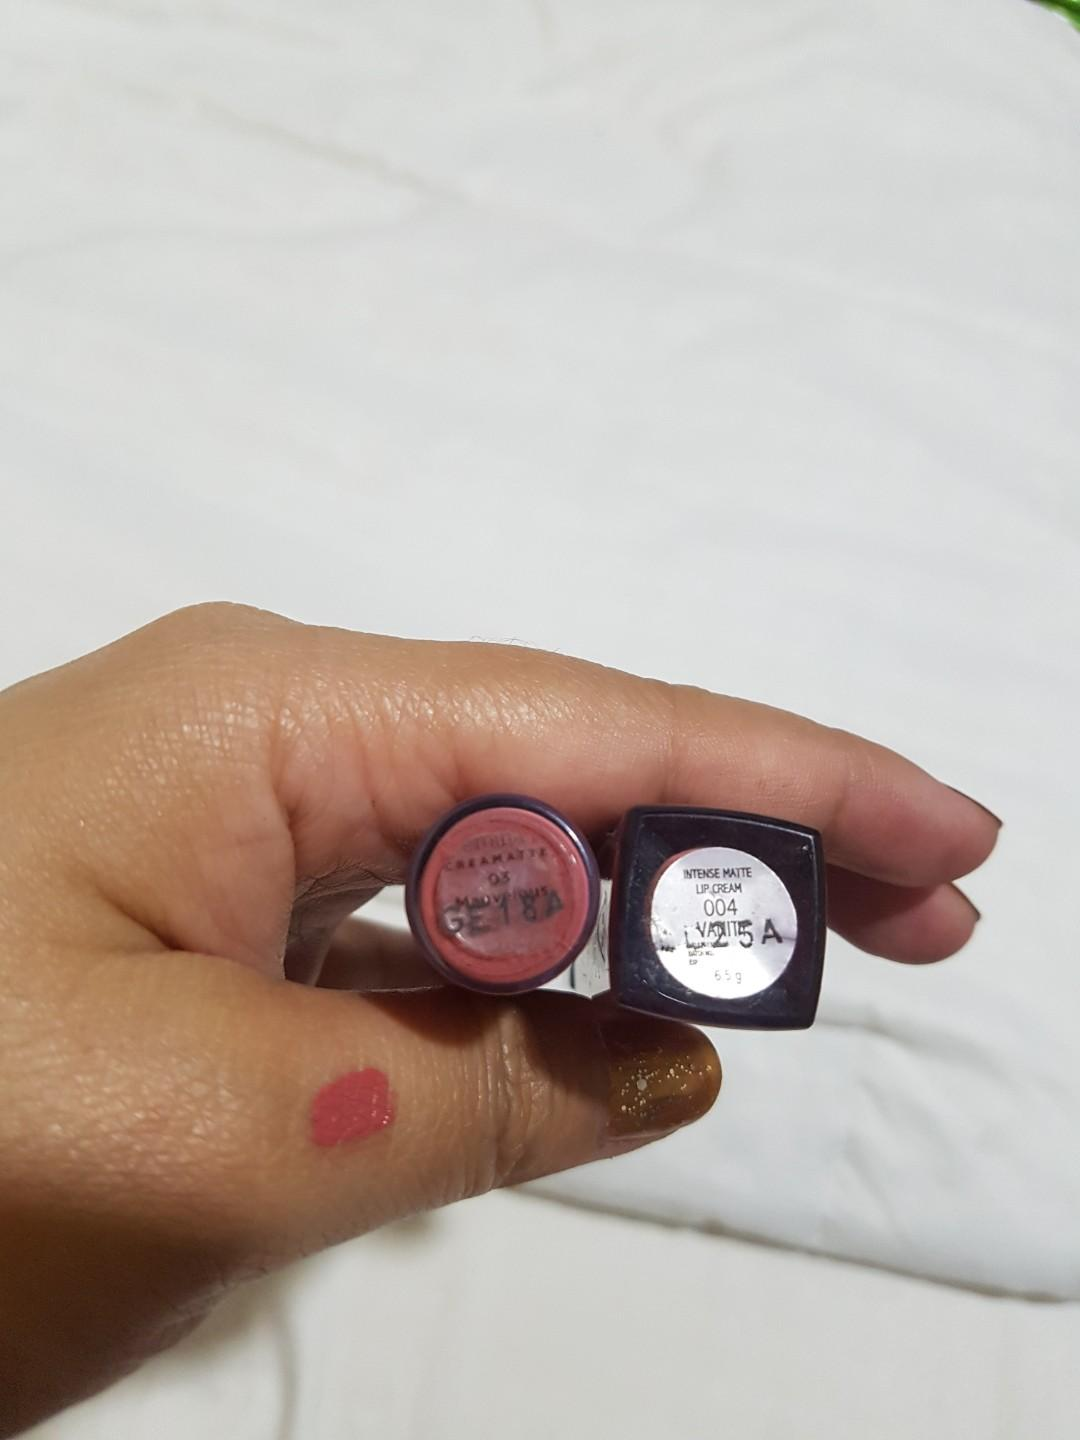 Make over intense matte lip cream 04 dan emina cream matte 03